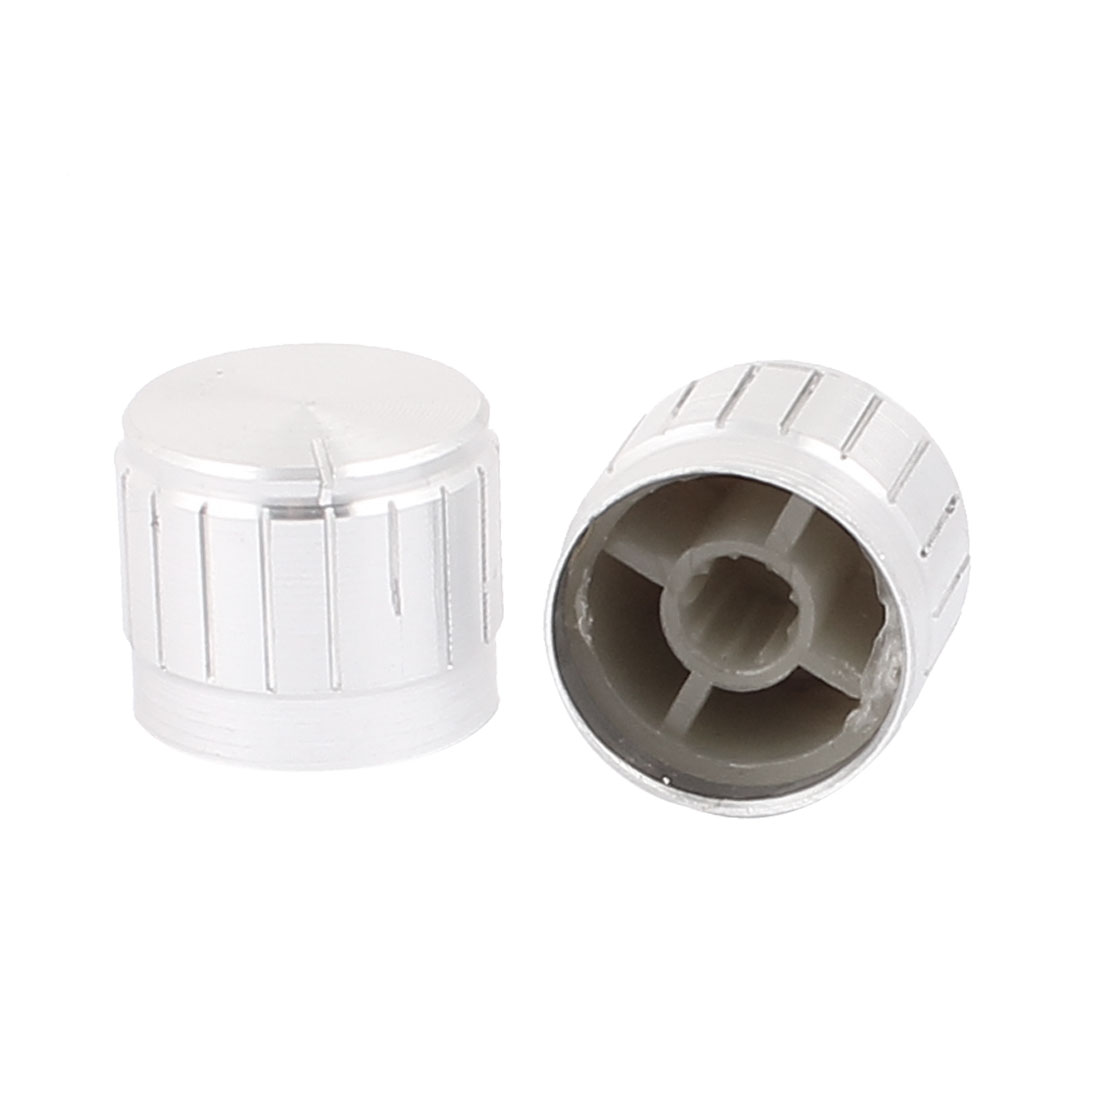 2 Pcs 21mm x 6mm Aluminium Alloy Potentiometer Control Knob Mini Cap Knurled Button Silver Tone